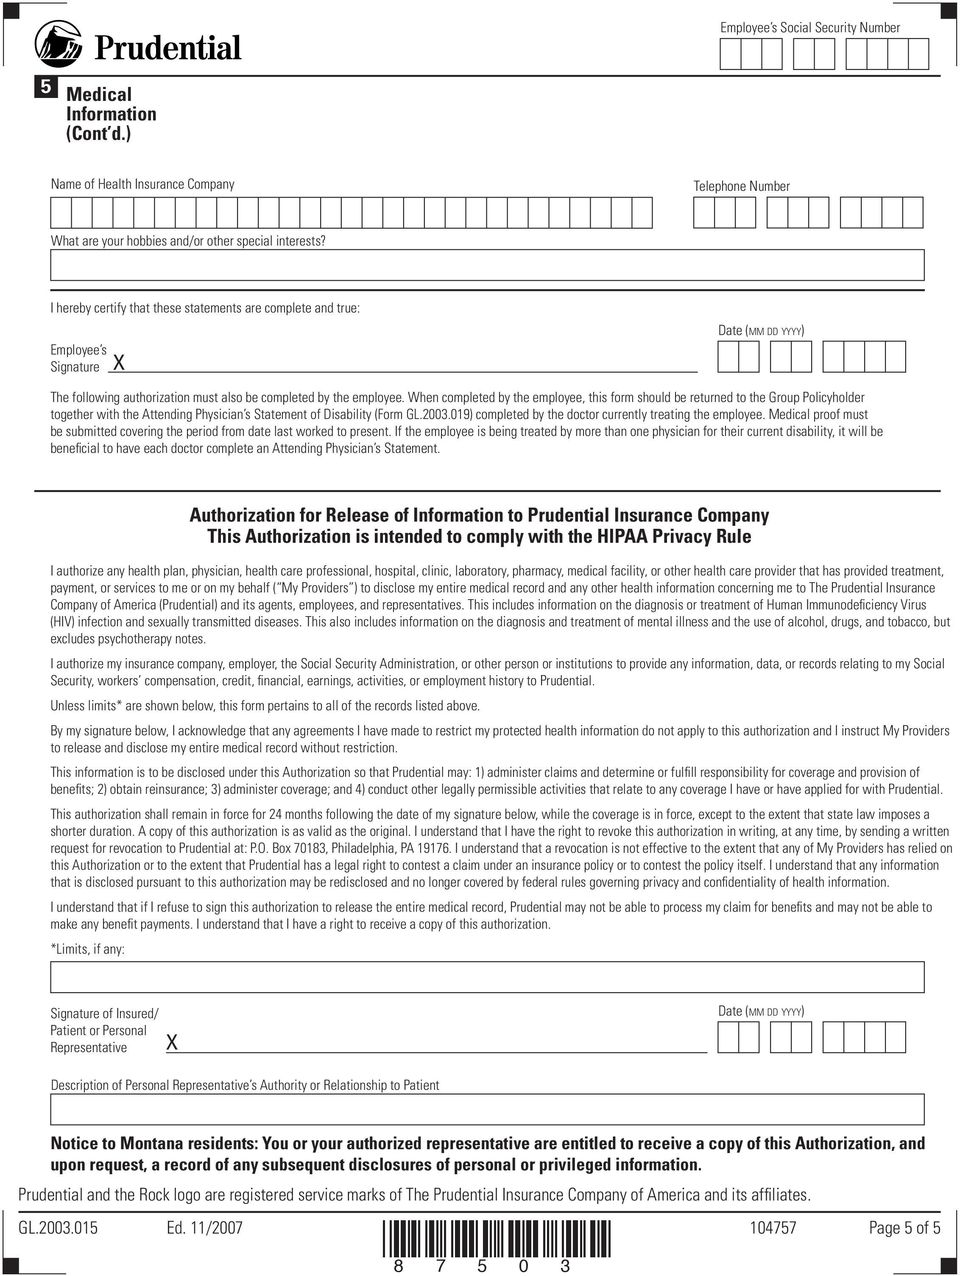 When completed by the employee, this form should be returned to the Group Policyholder together with the Attending Physician s Statement of Disability (Form GL.2003.